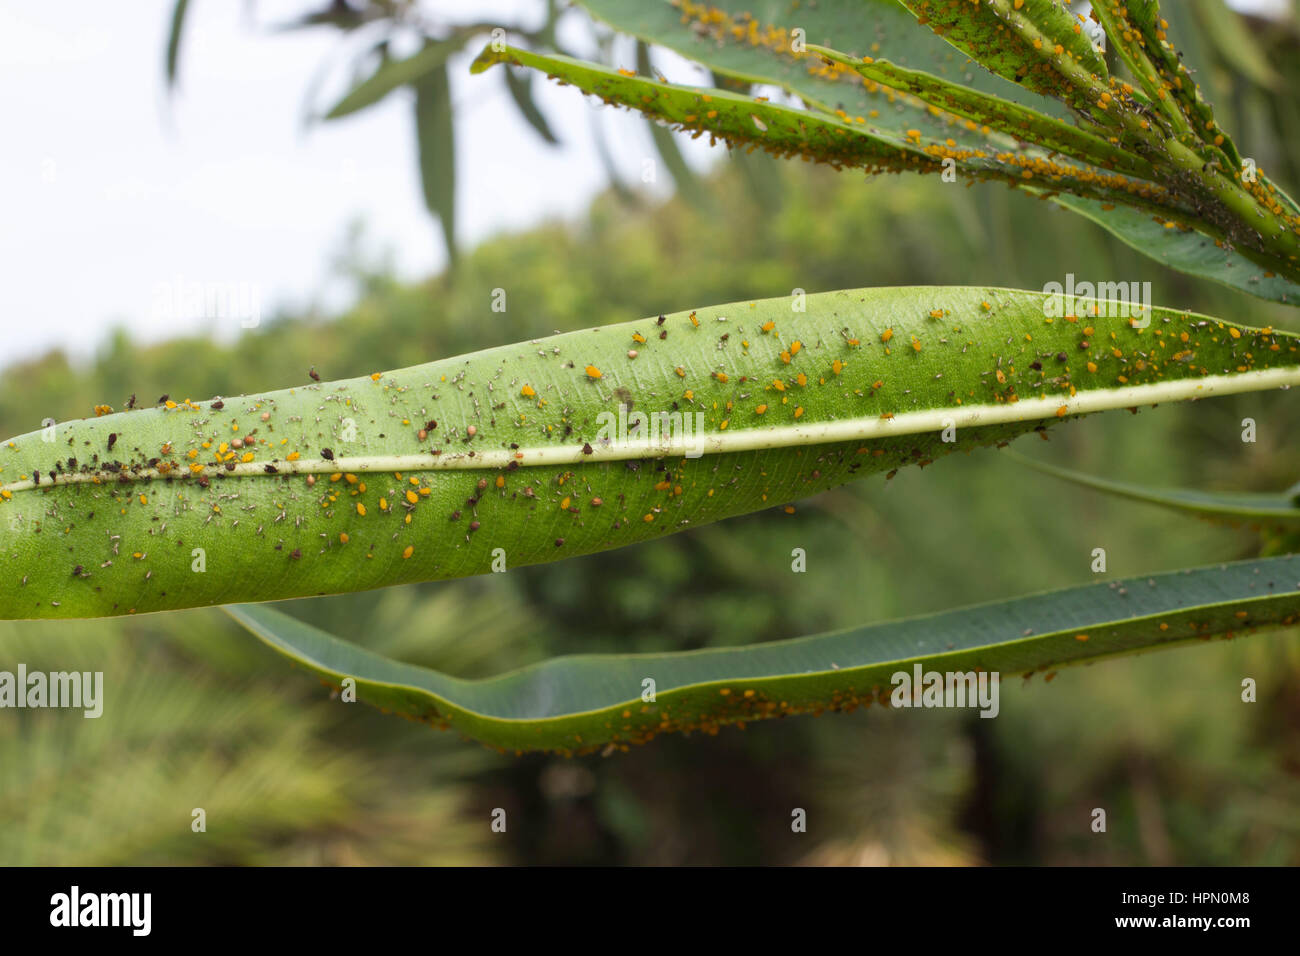 Scale Insects Stock Photos & Scale Insects Stock Images ... Dactylopiidae Scale Leaf